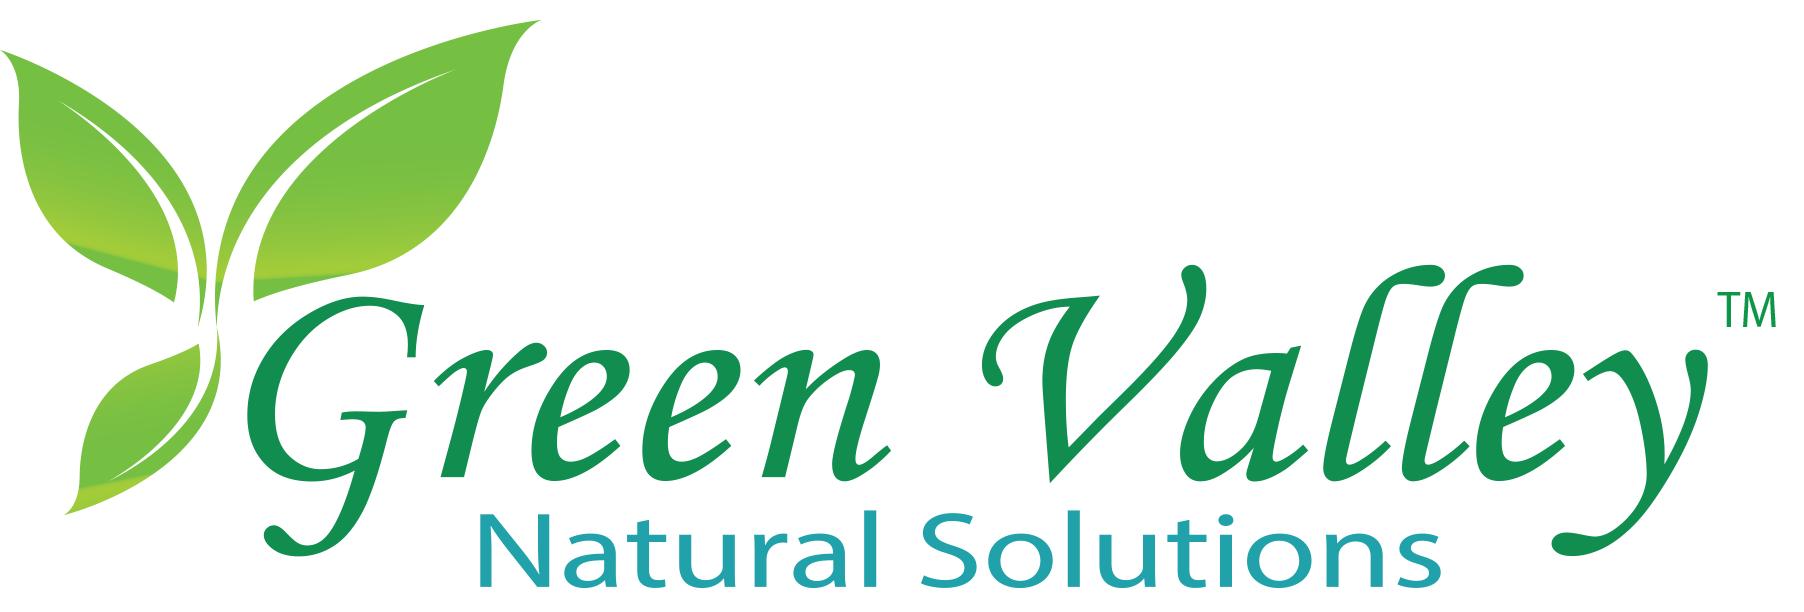 Green Valley Natural Solutions Retina Logo